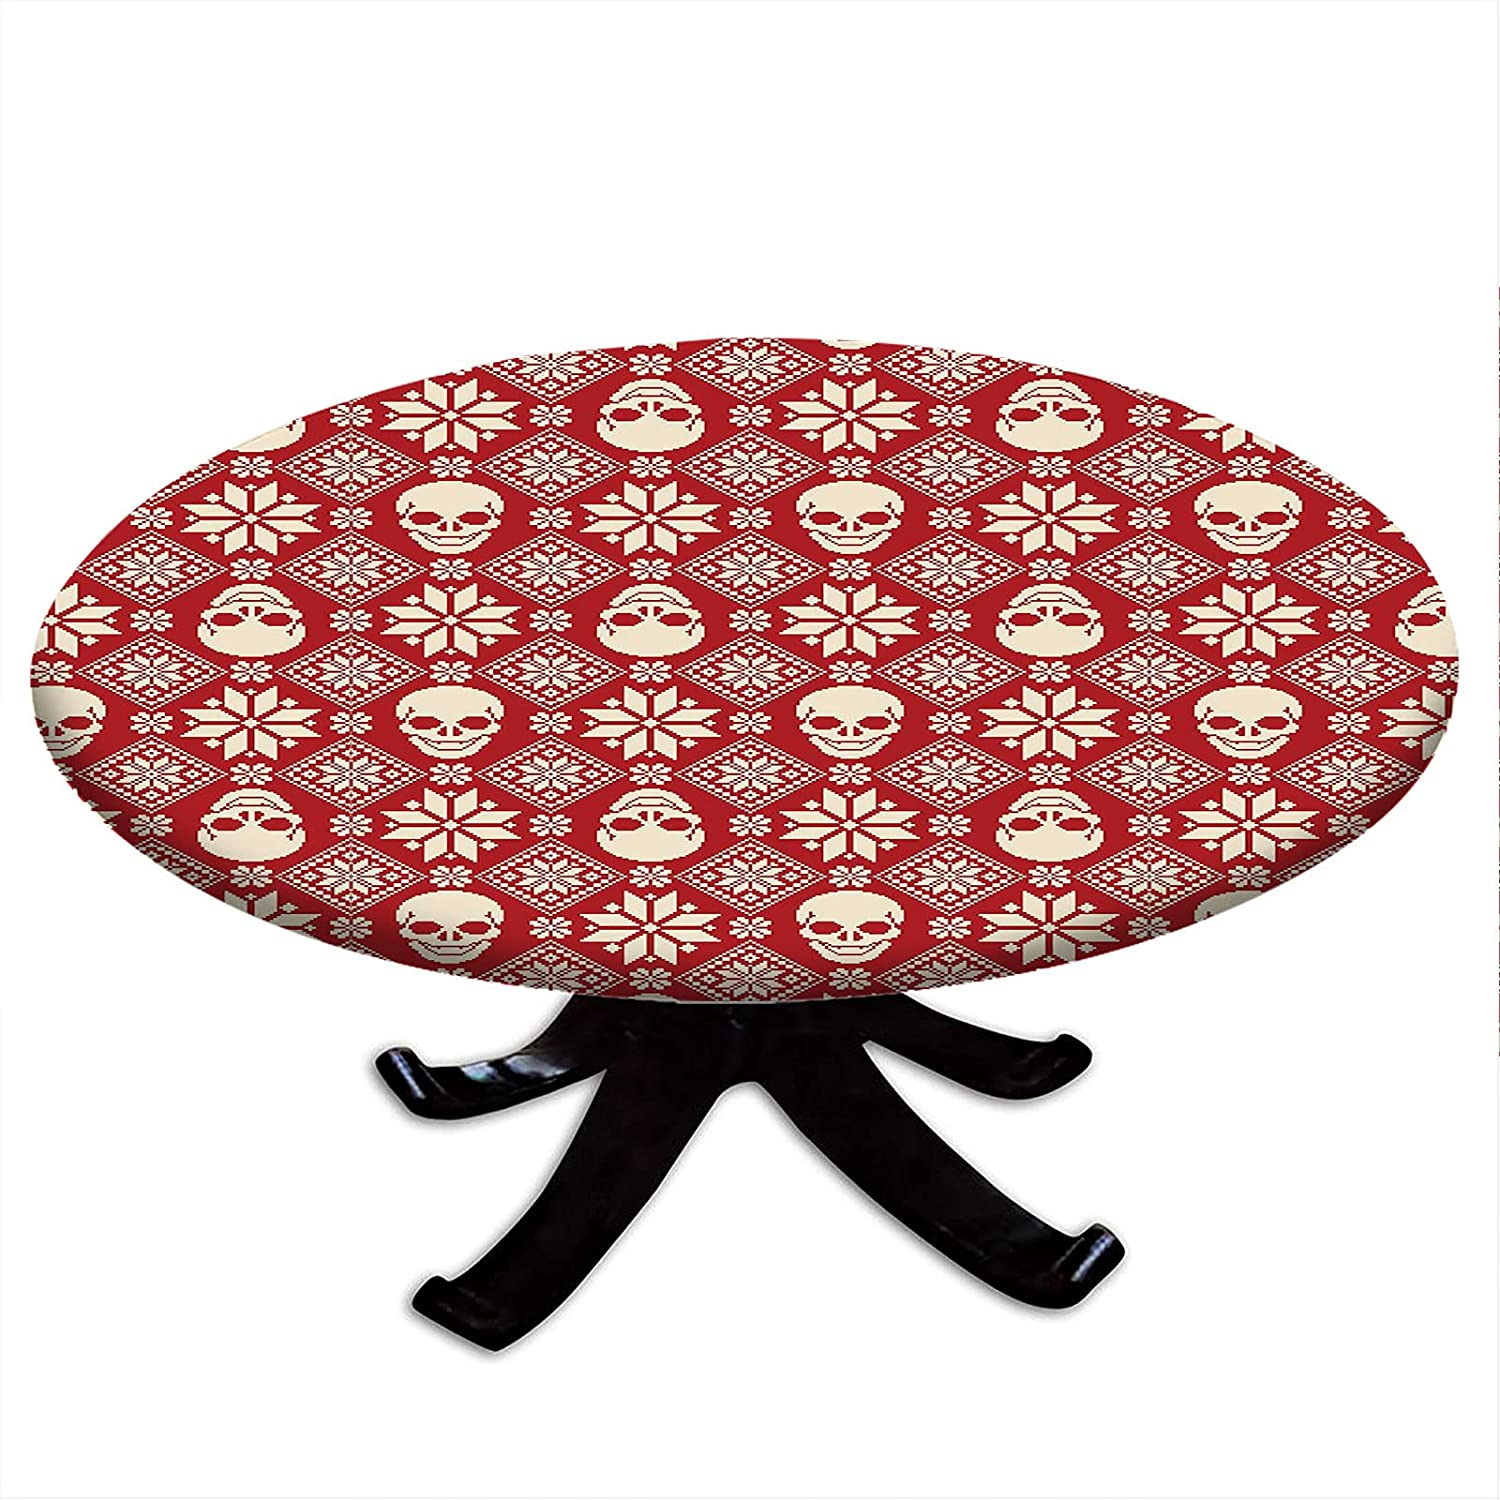 Round Tablecloth with Time sale Elastic Edges Skull Stitch Nordic Max 42% OFF Pattern